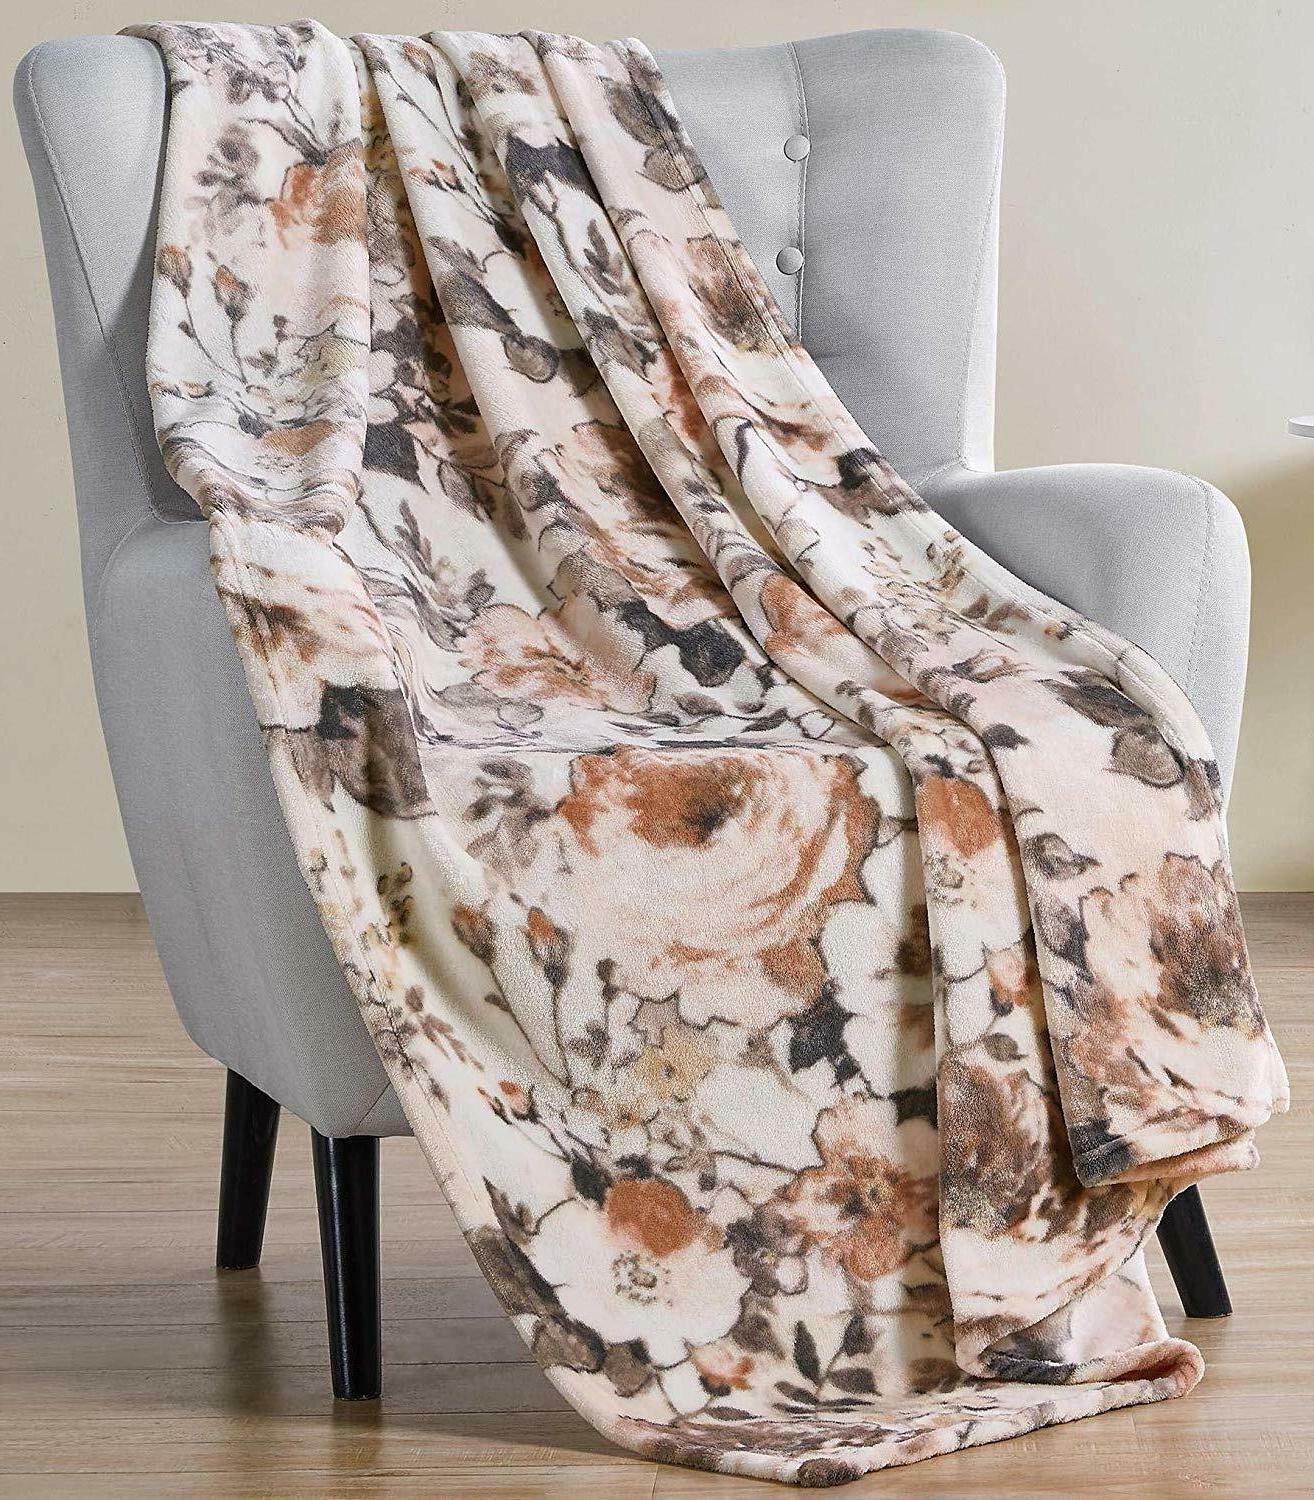 throw blanket large floral watercolor design accent